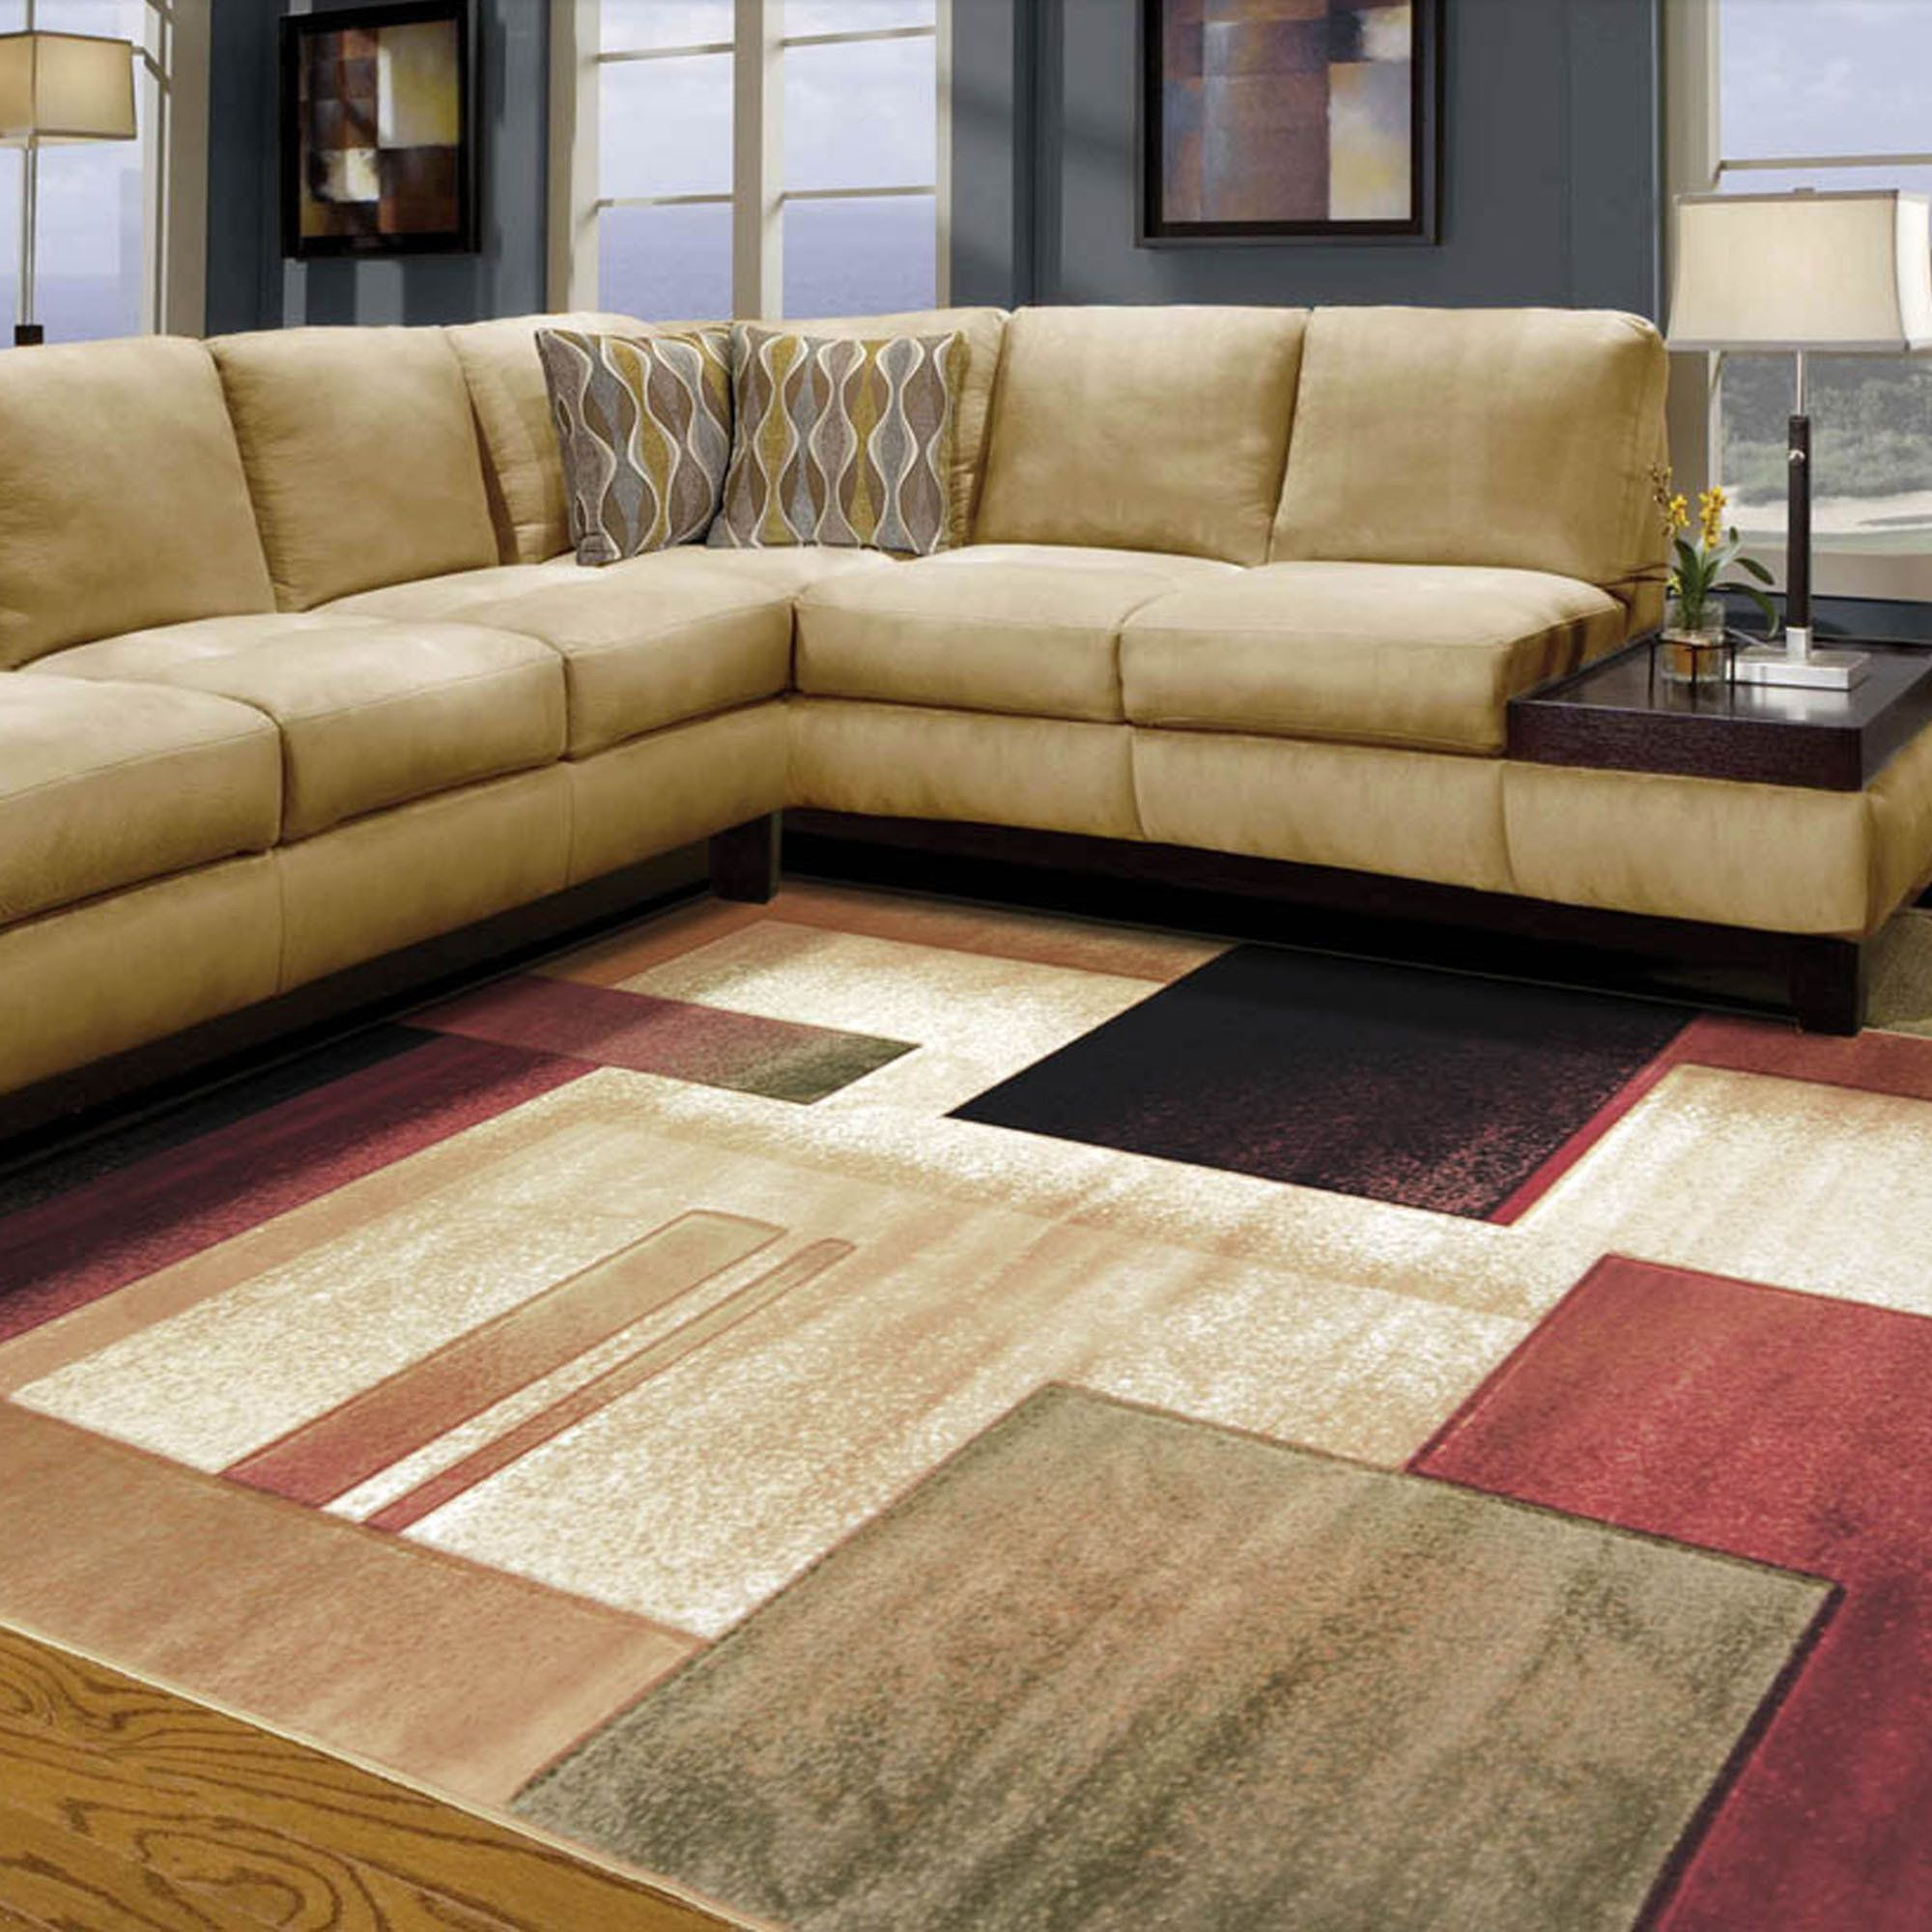 Ways To Style A Room With Room Rugs Rugs In Living Room Living